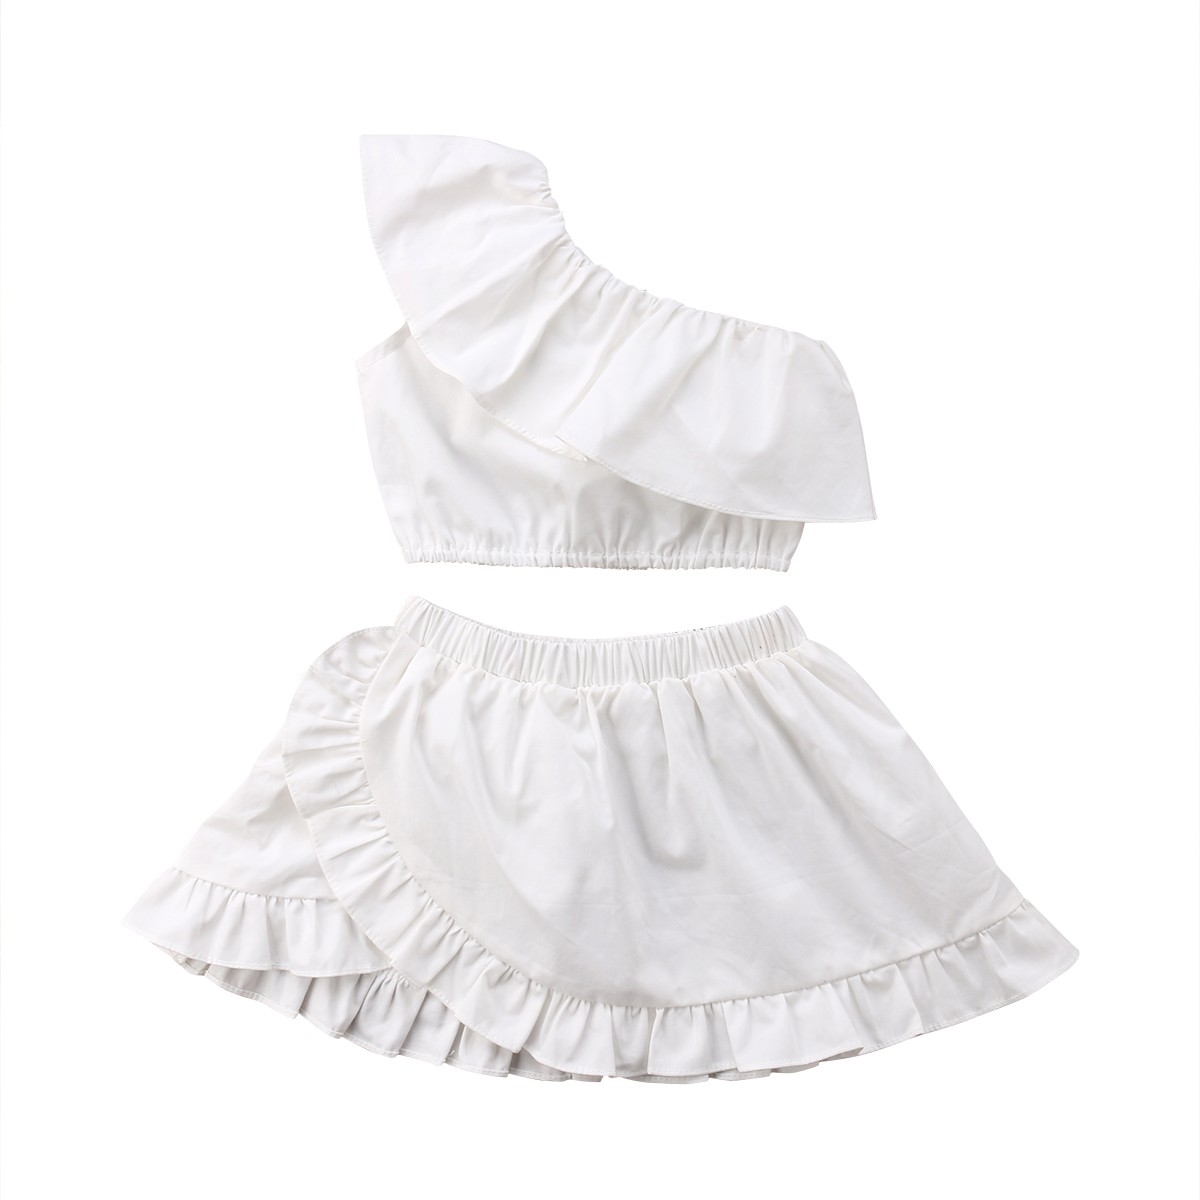 2pcs Newest Baby Girl Clothes Set White Newborn Kids Girls Off Shoulder Crop Tops Skirt Outfits Cotton Children Clothing 0-24M